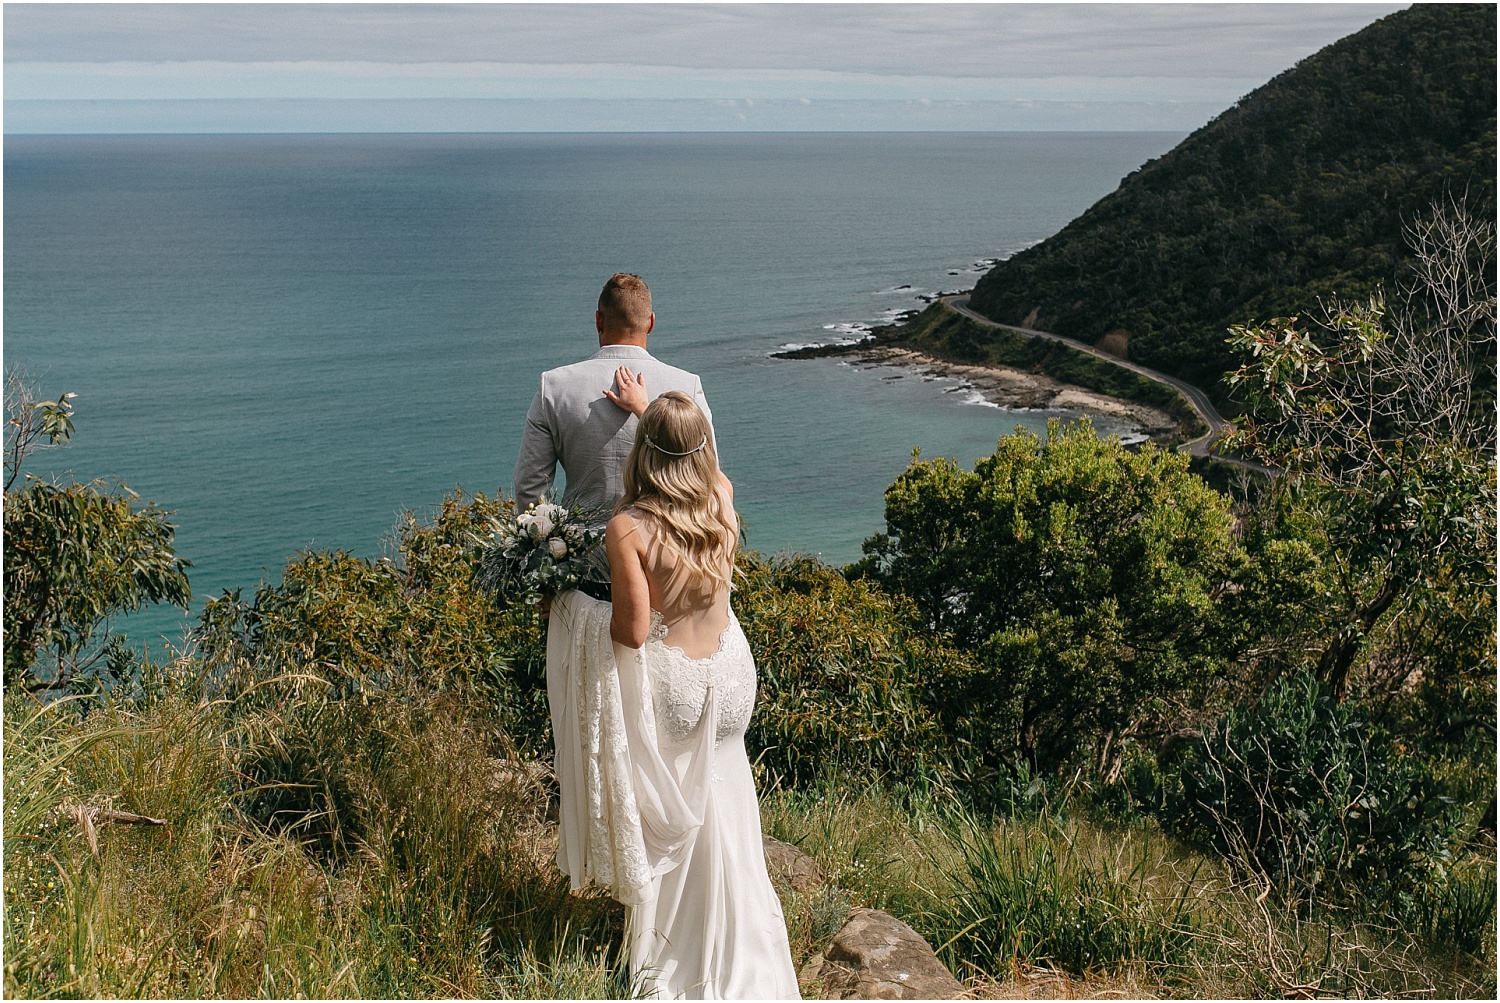 Renee and Ash's real elopement in Lorne on the Great Ocean Roadwith the ceremony at erskin falls._0056.jpg